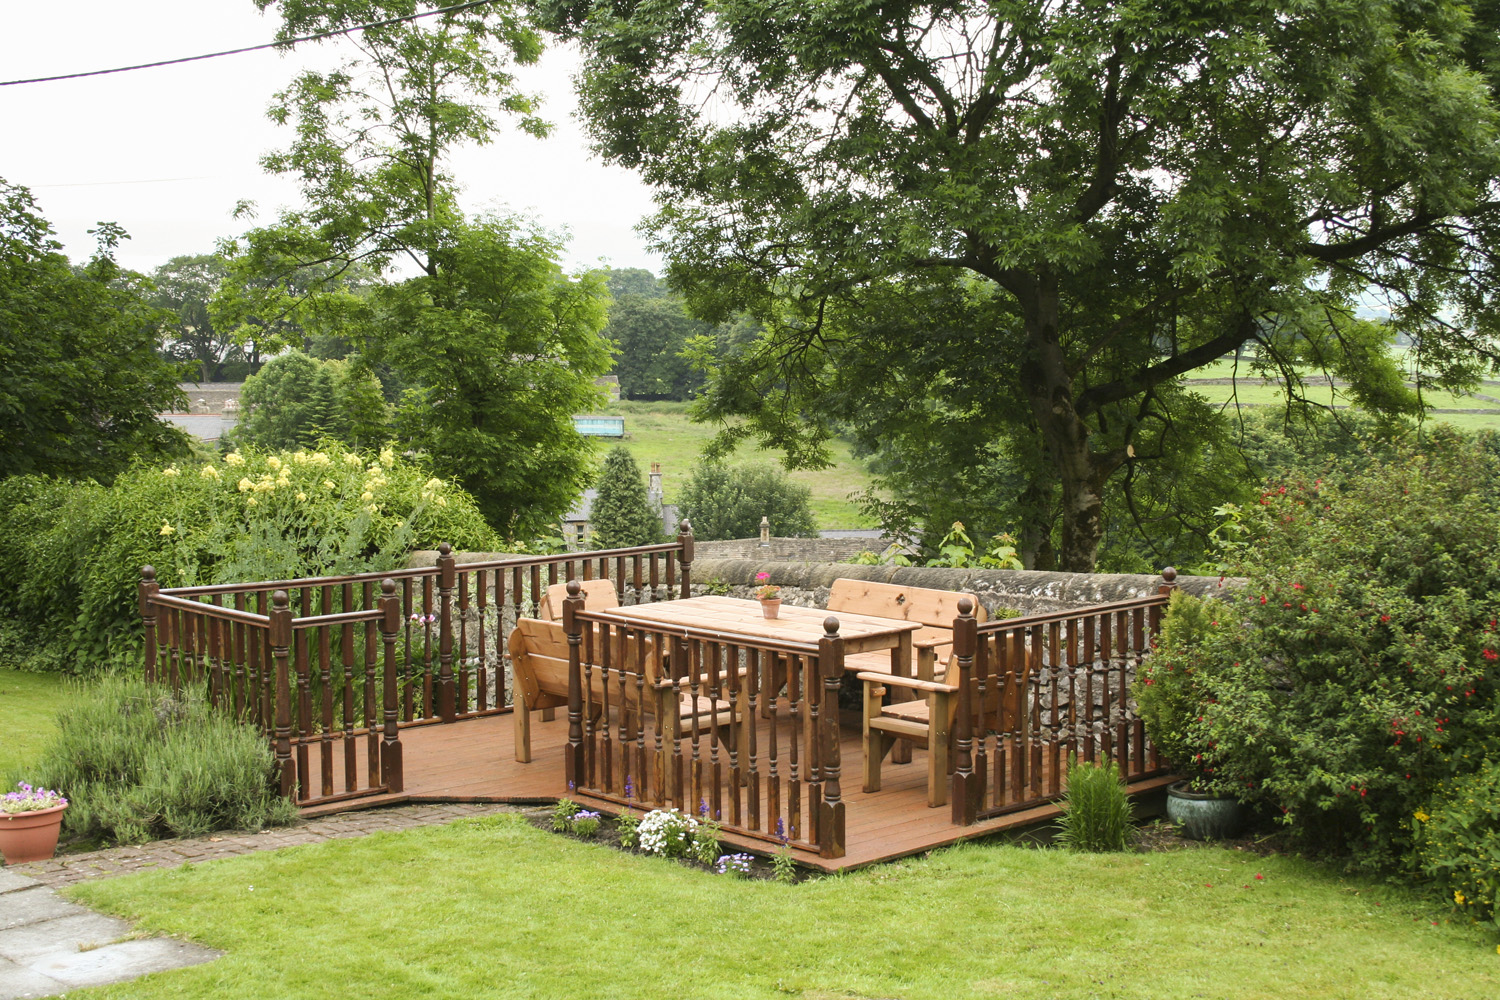 Decking area for outdoor dining.